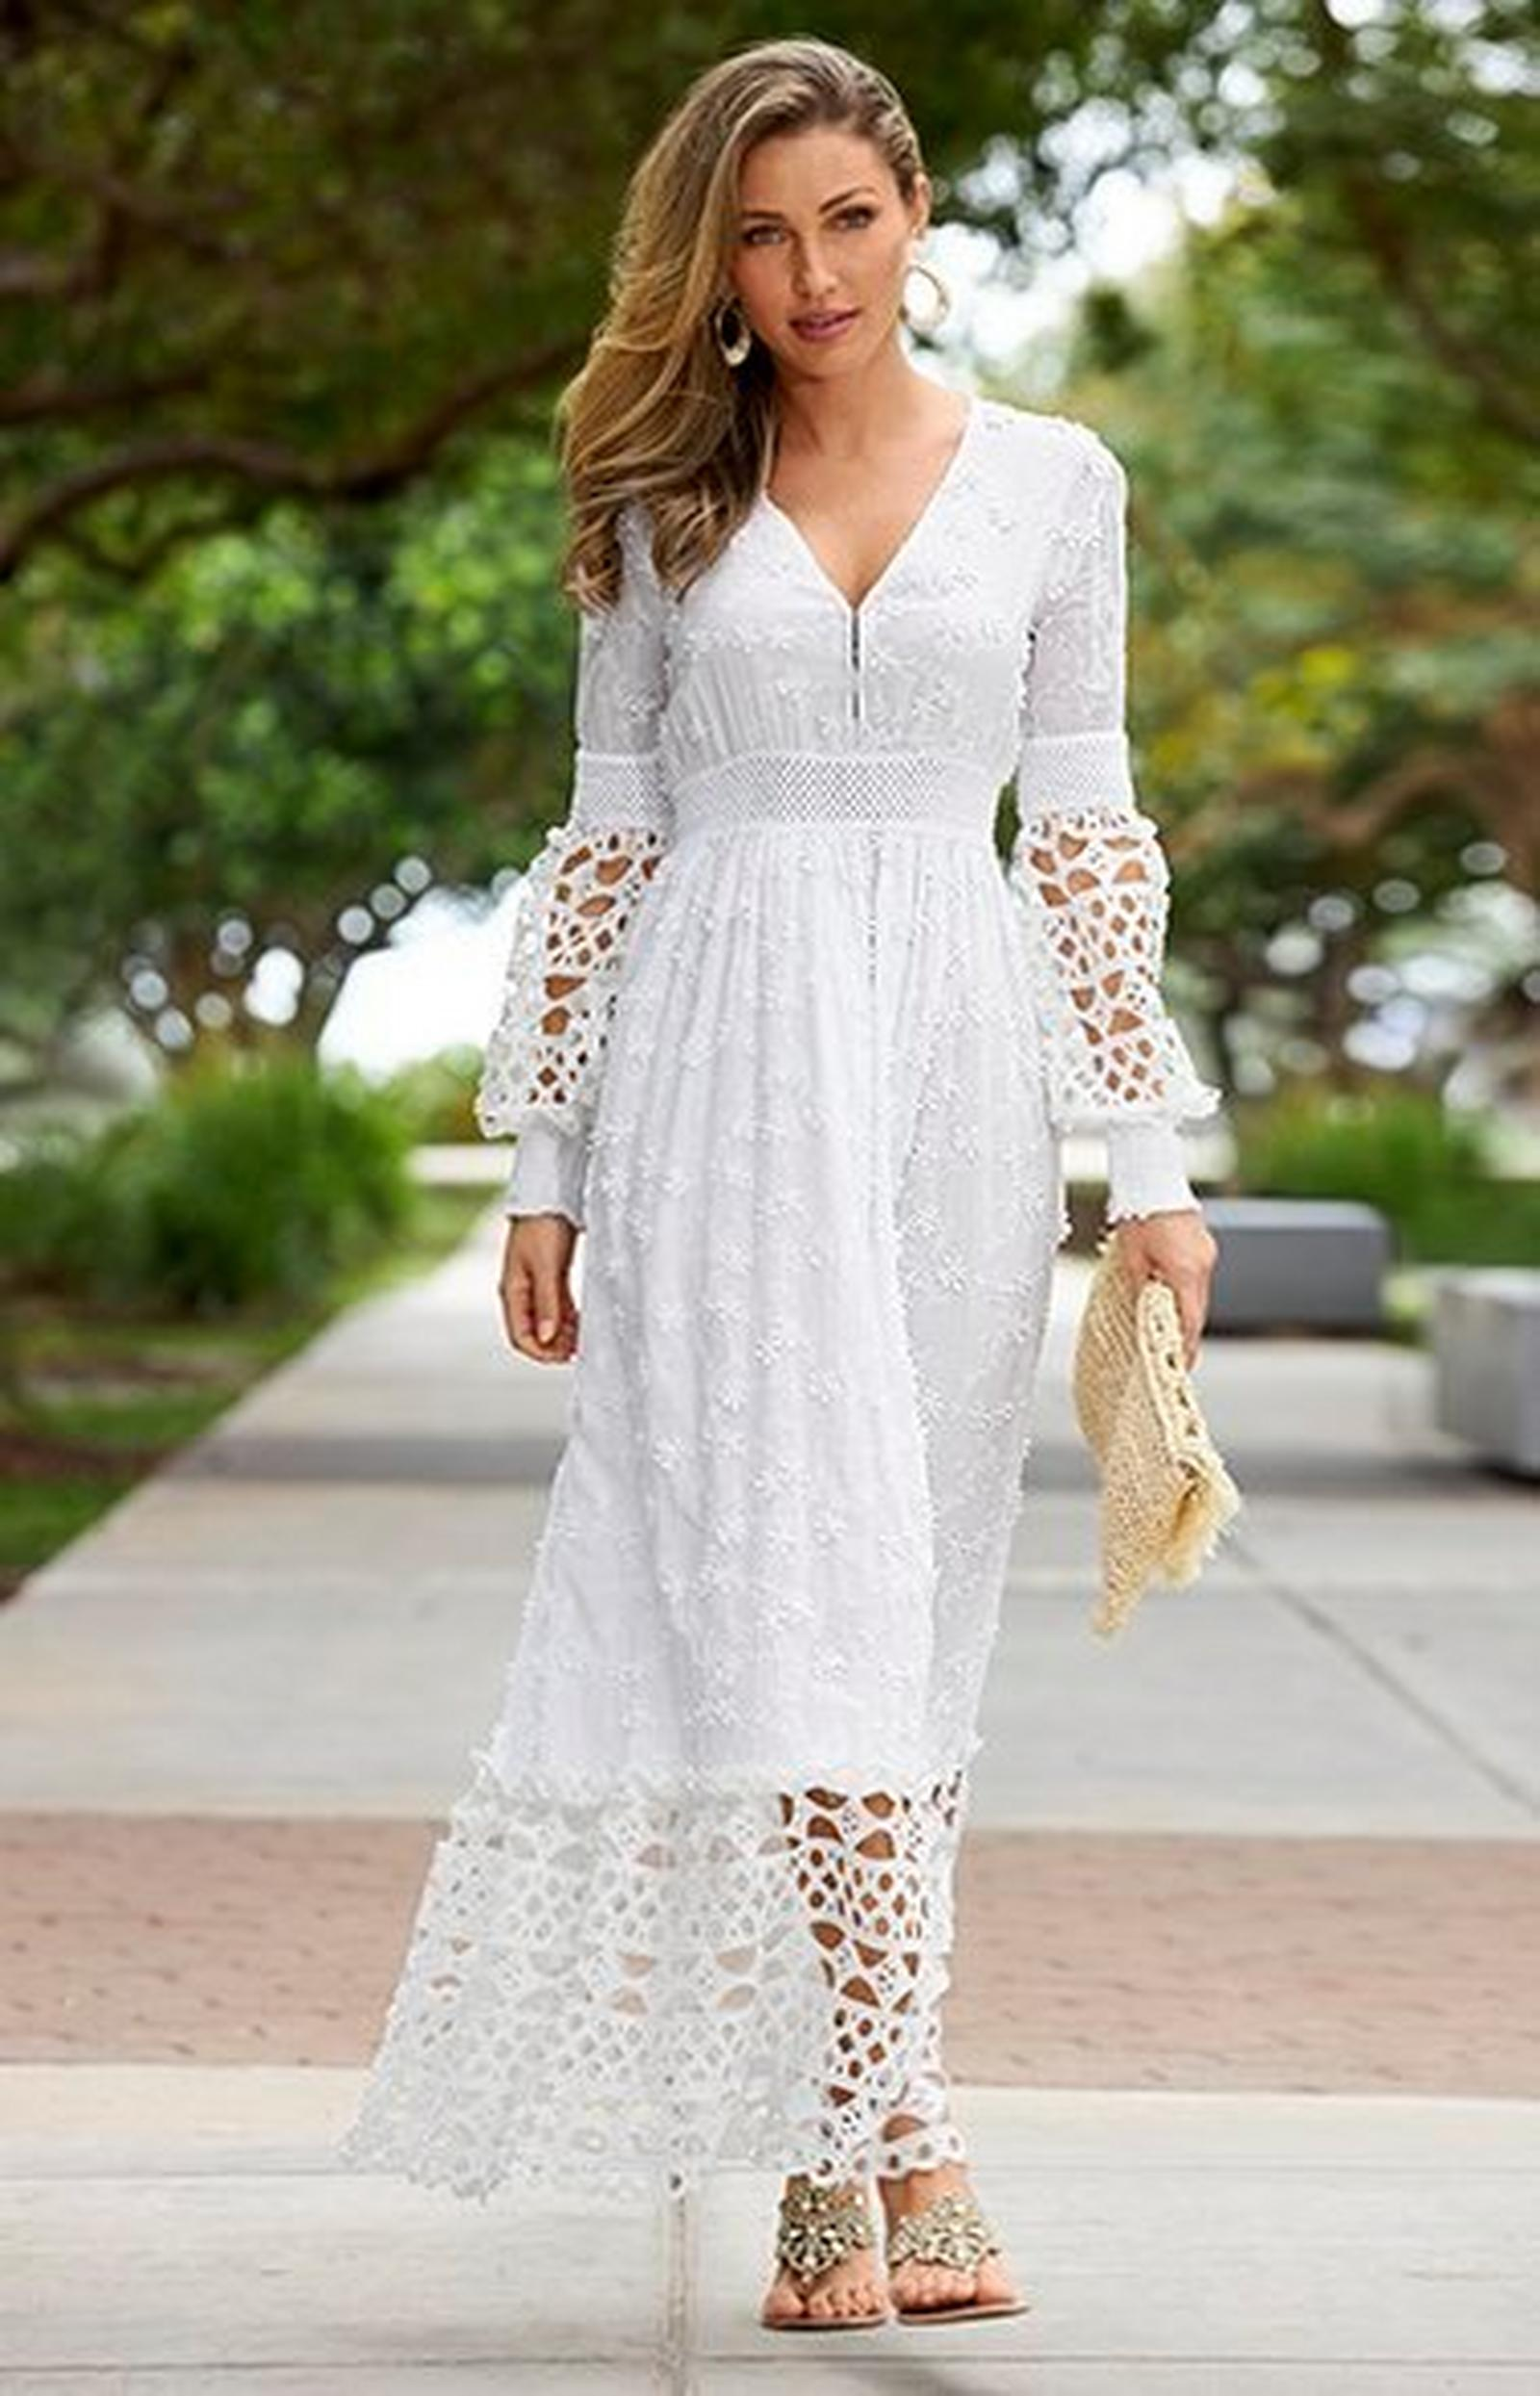 model wearing a white lace long-sleeve v-neck maxi dress, jeweled sandals, and holding a straw clutch.